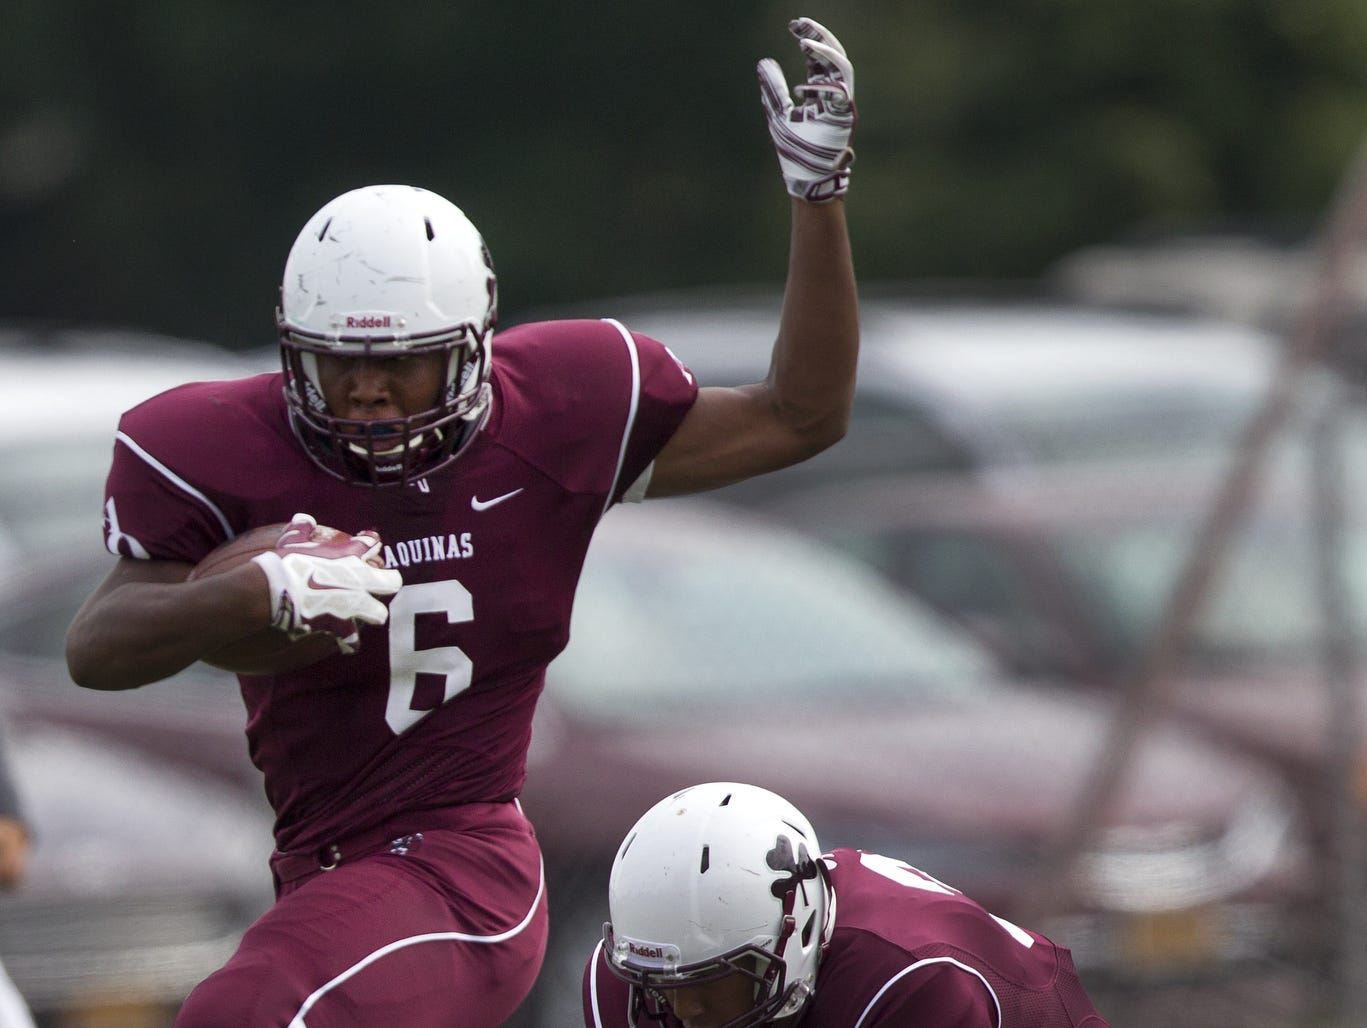 Aquinas rising senior Taylor Riggins accepted an offer of a football scholarship from Syracuse University.